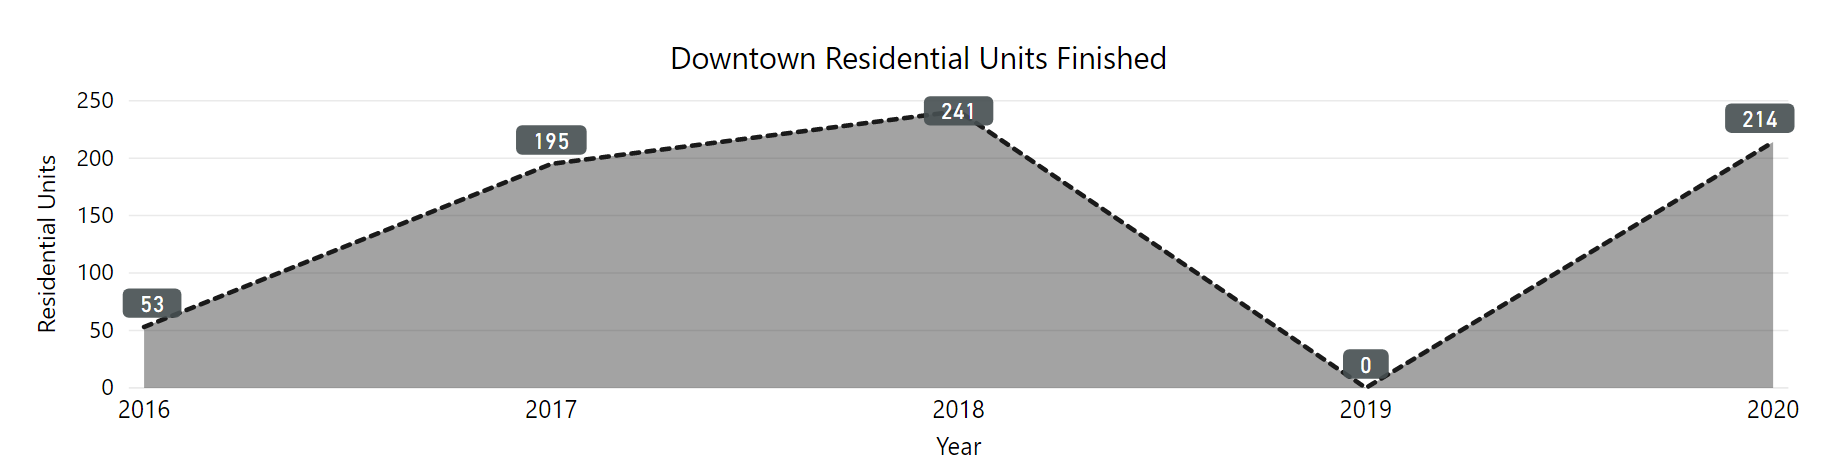 downtown residential units finished by year 2016 to 2020. 2016 was 53. 2017 was 195. 2018 was 241, 2019 was zero. 2020 WAS 214.